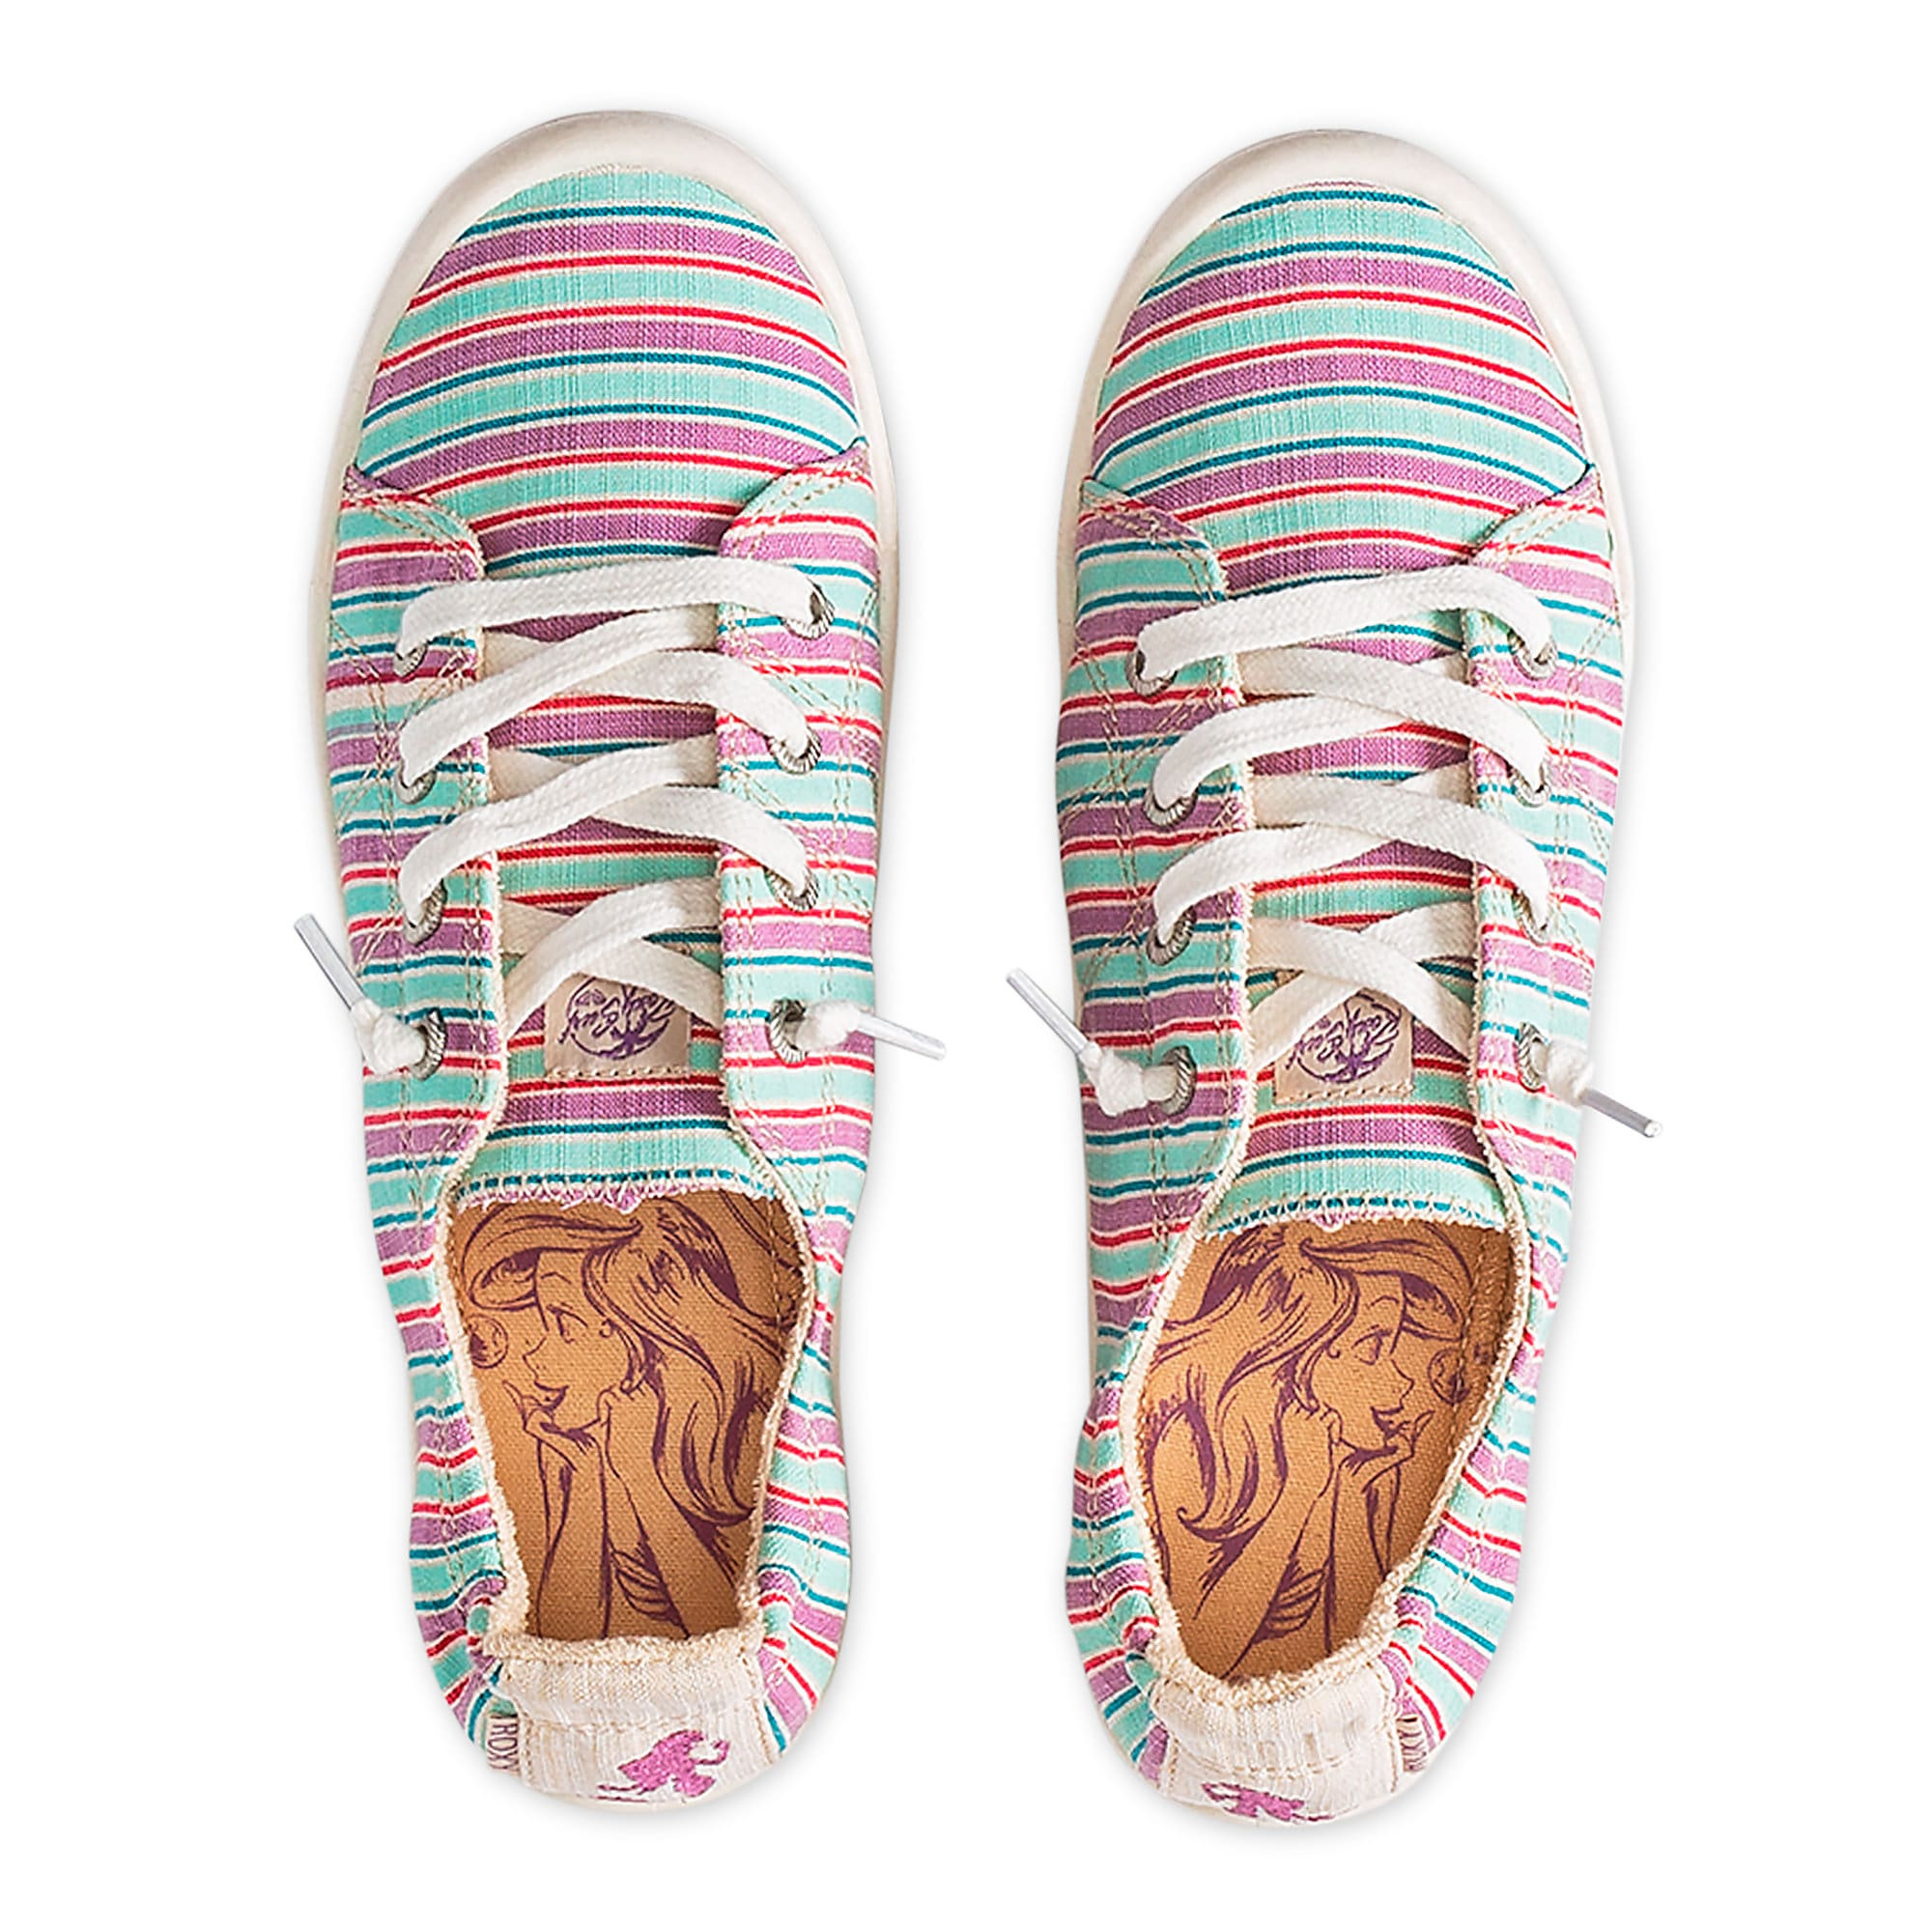 acd166b3a250 Ariel Striped Sneakers for Girls by ROXY Girl